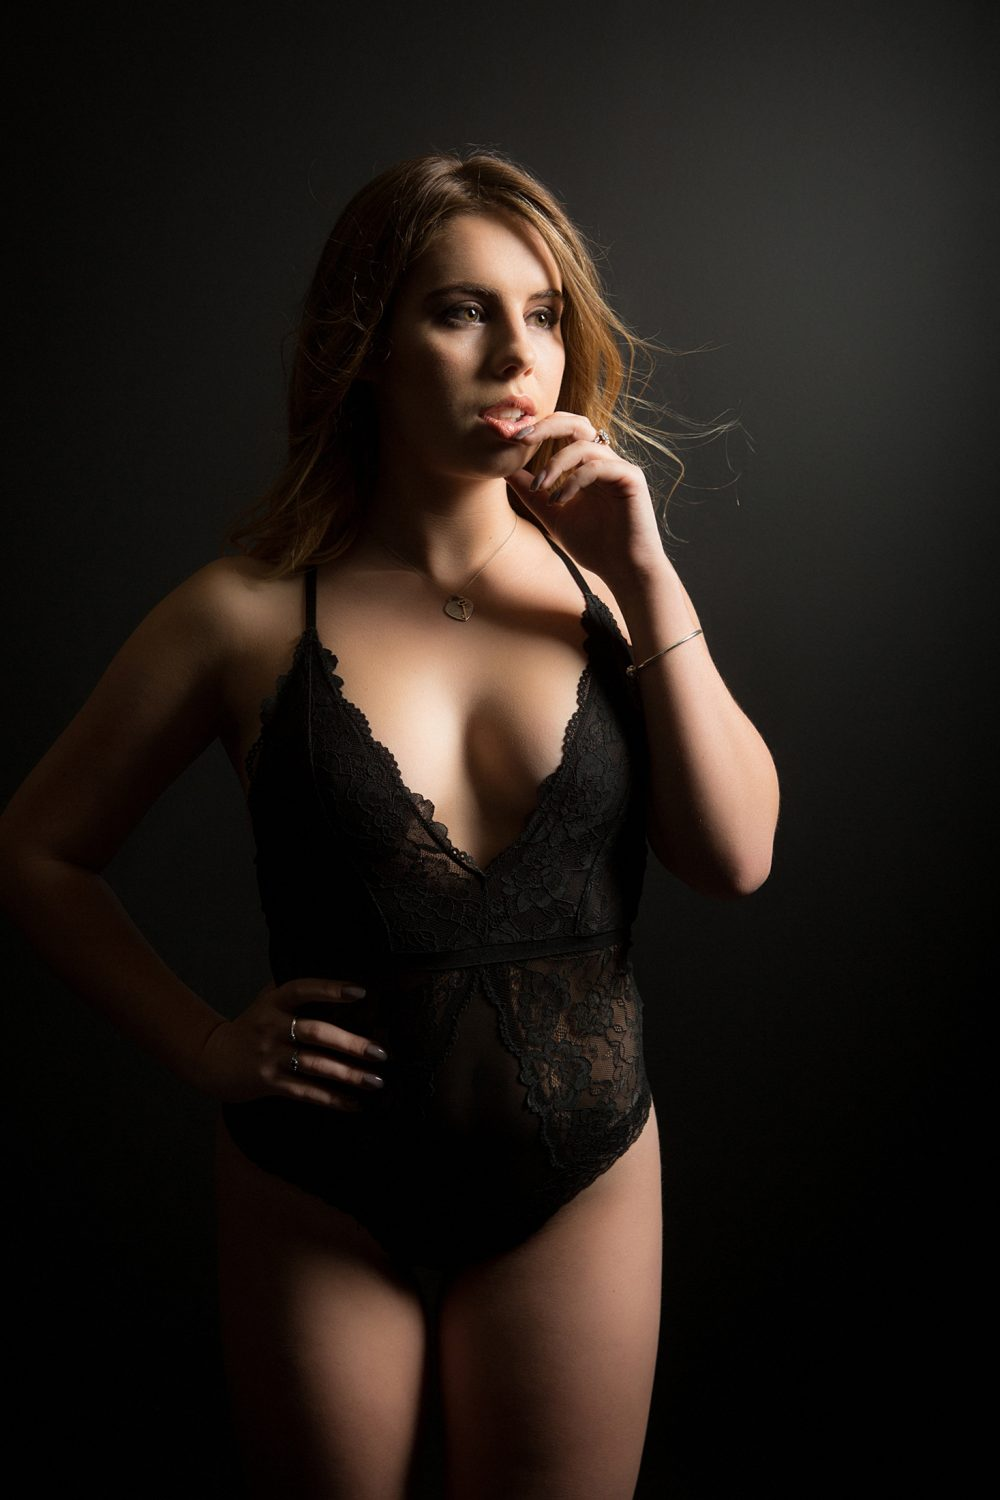 woman in lingerie poses for a boudoir photo shoot in a Perth studio